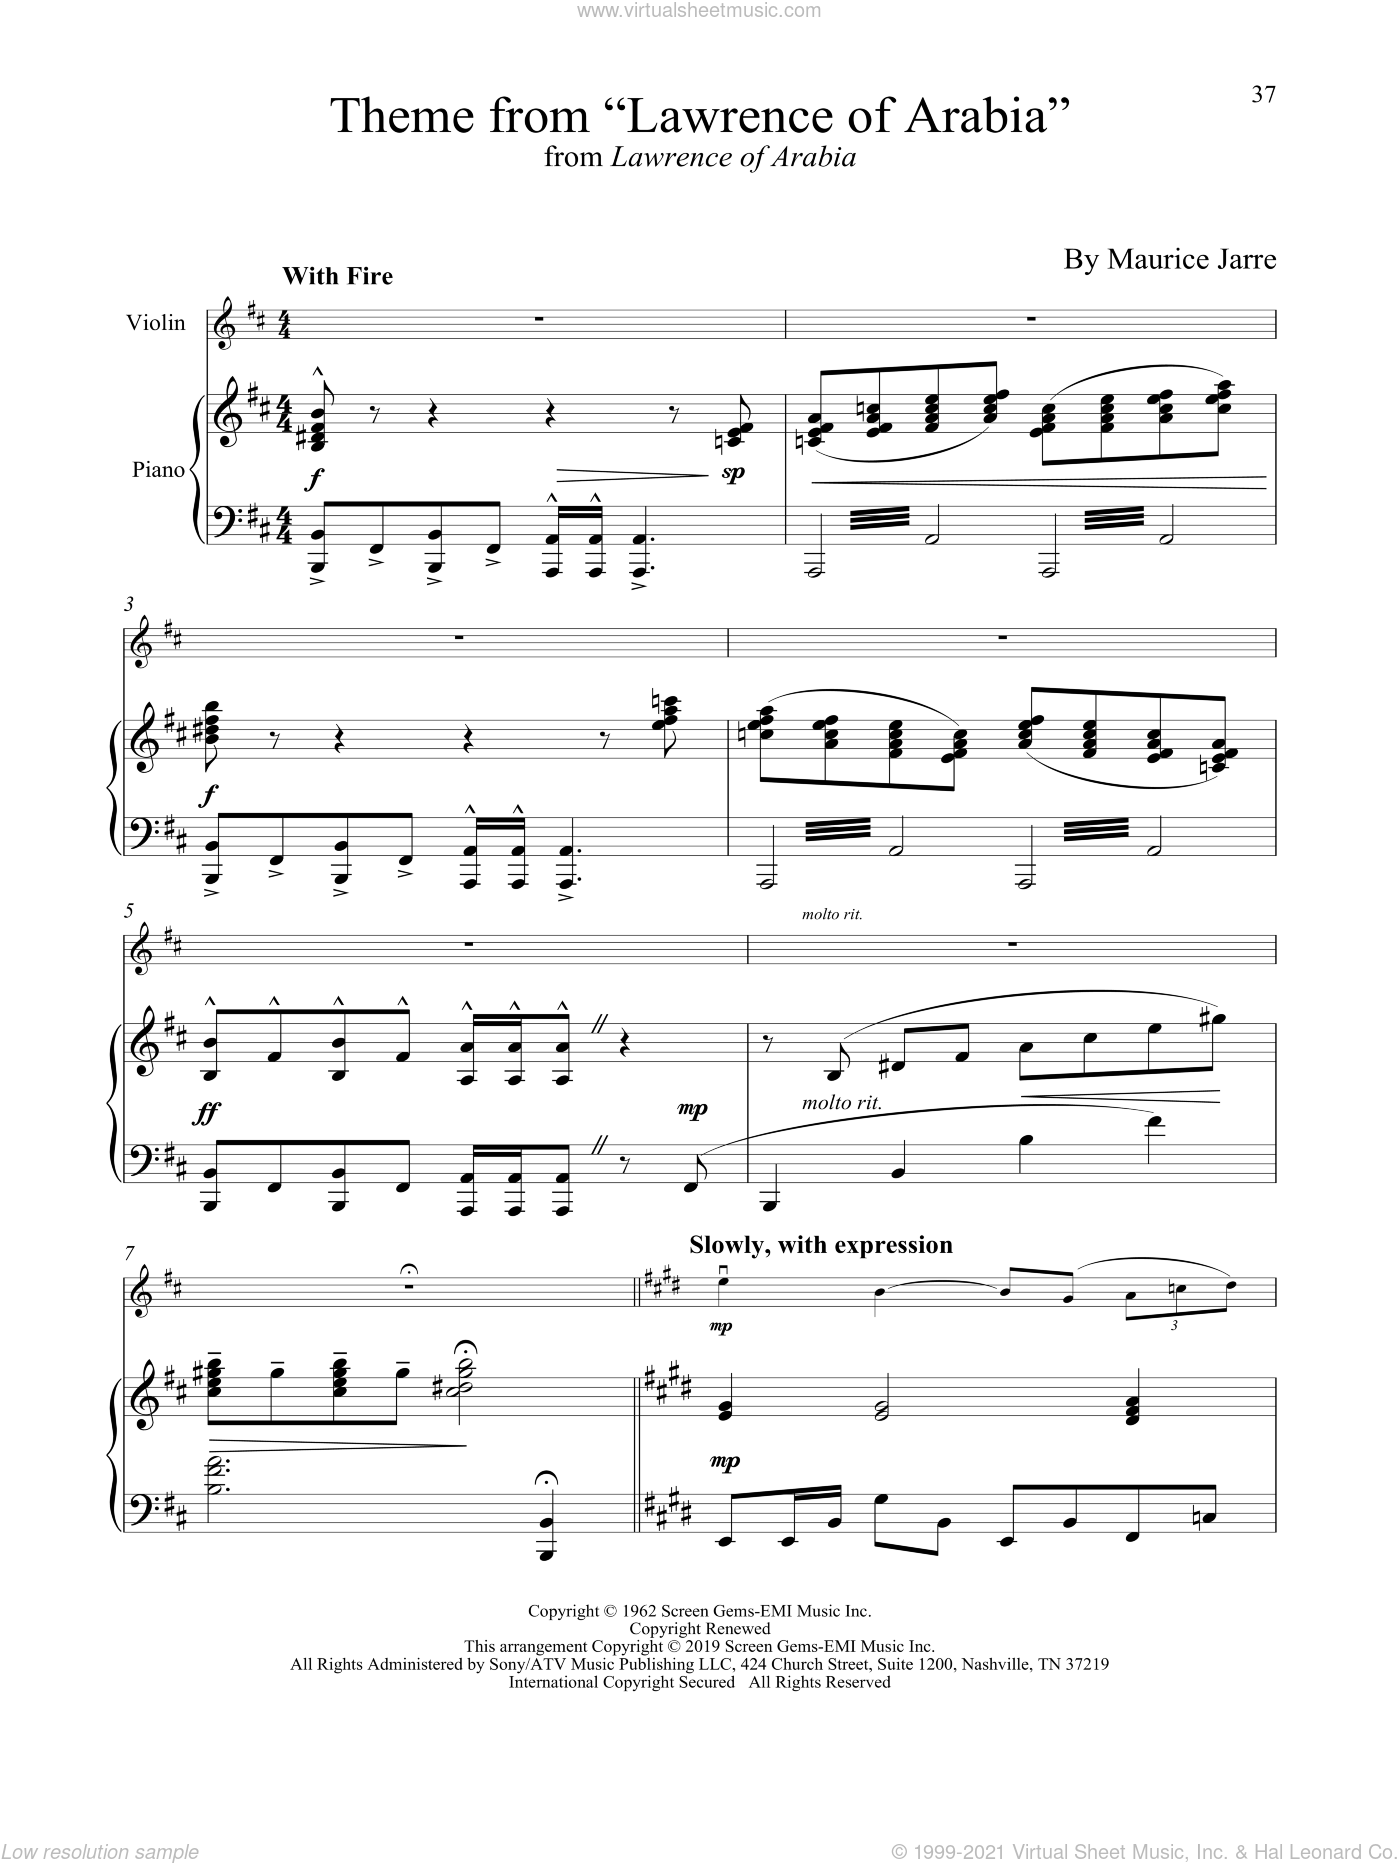 Theme From 'Lawrence Of Arabia' sheet music for violin and piano by Maurice Jarre, intermediate skill level